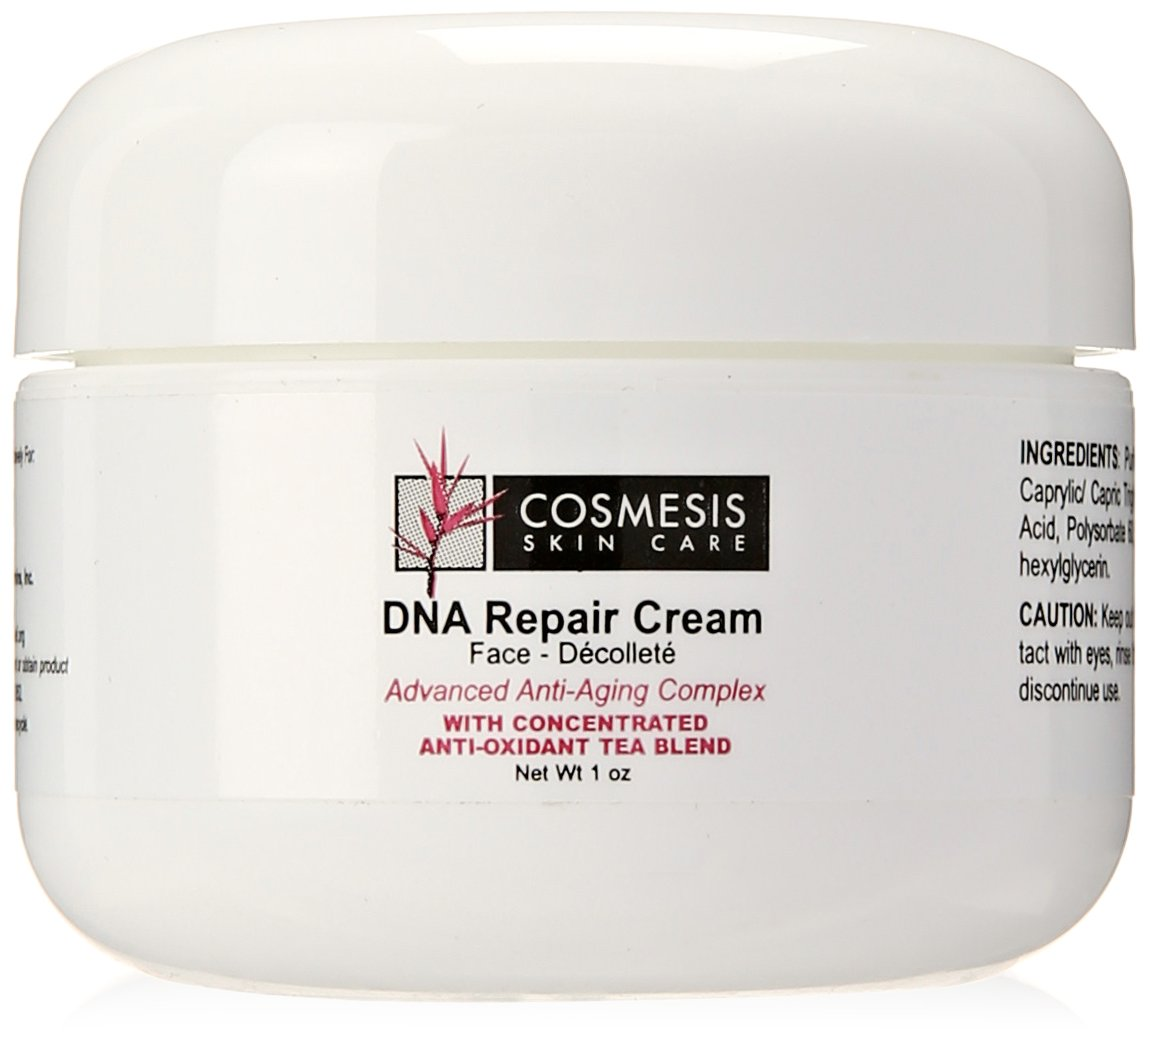 Life Extension DNA Repair Cream Jar, 1 Ounce